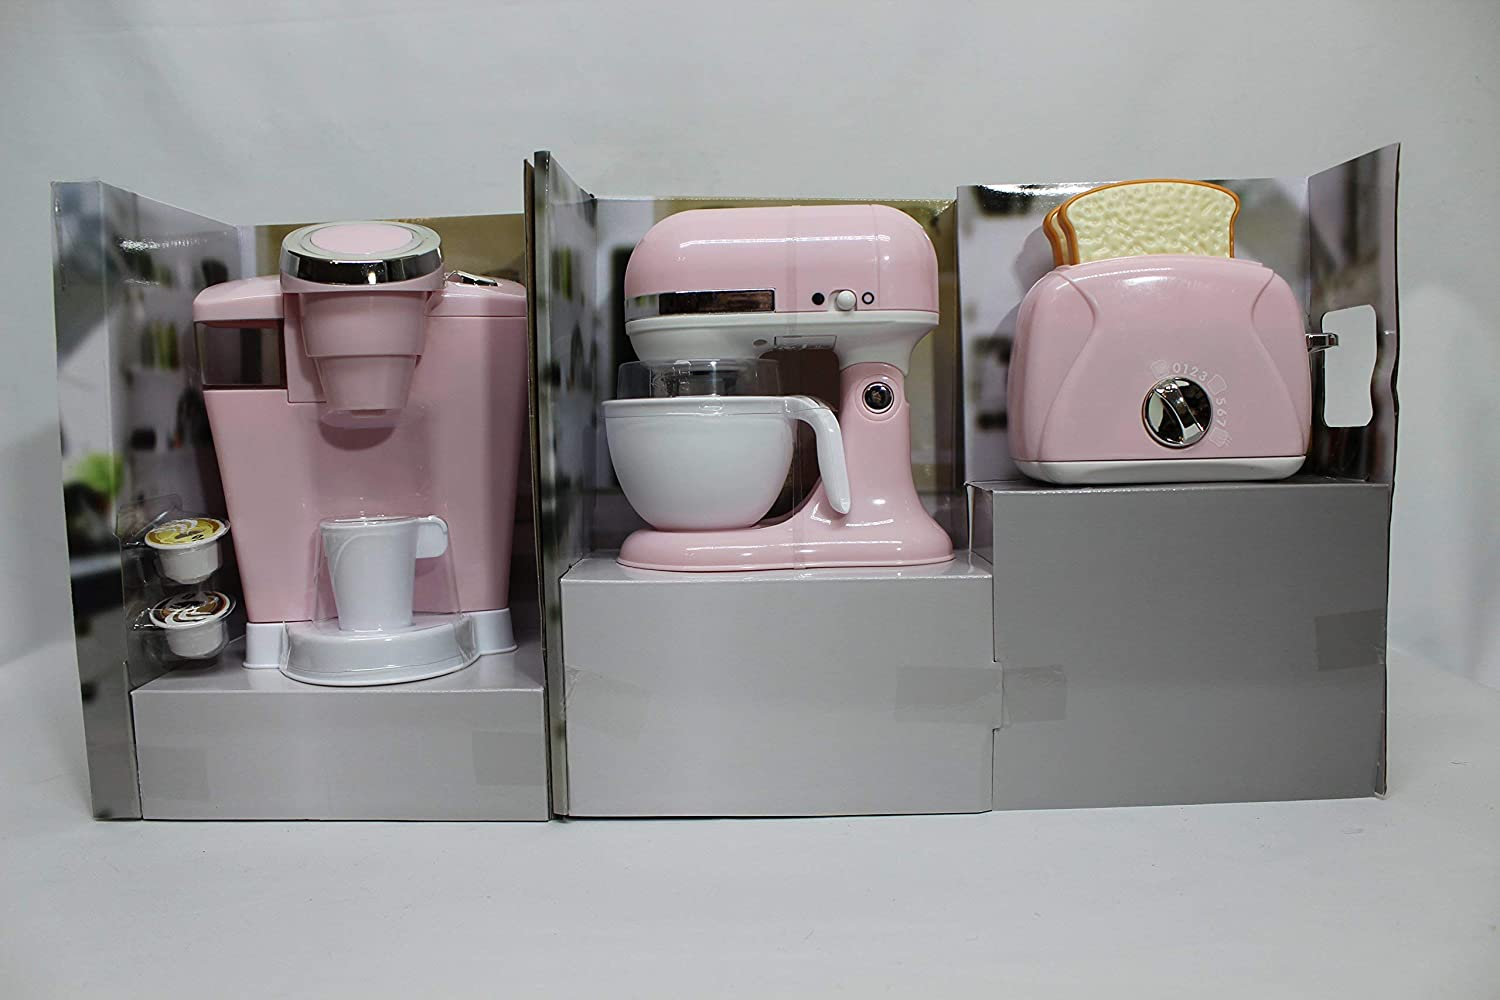 Gourmet Kitchen Appliance Set Playgo 3 Pc Kitchen Toys Cooking Baking Kits Agtcorp Com